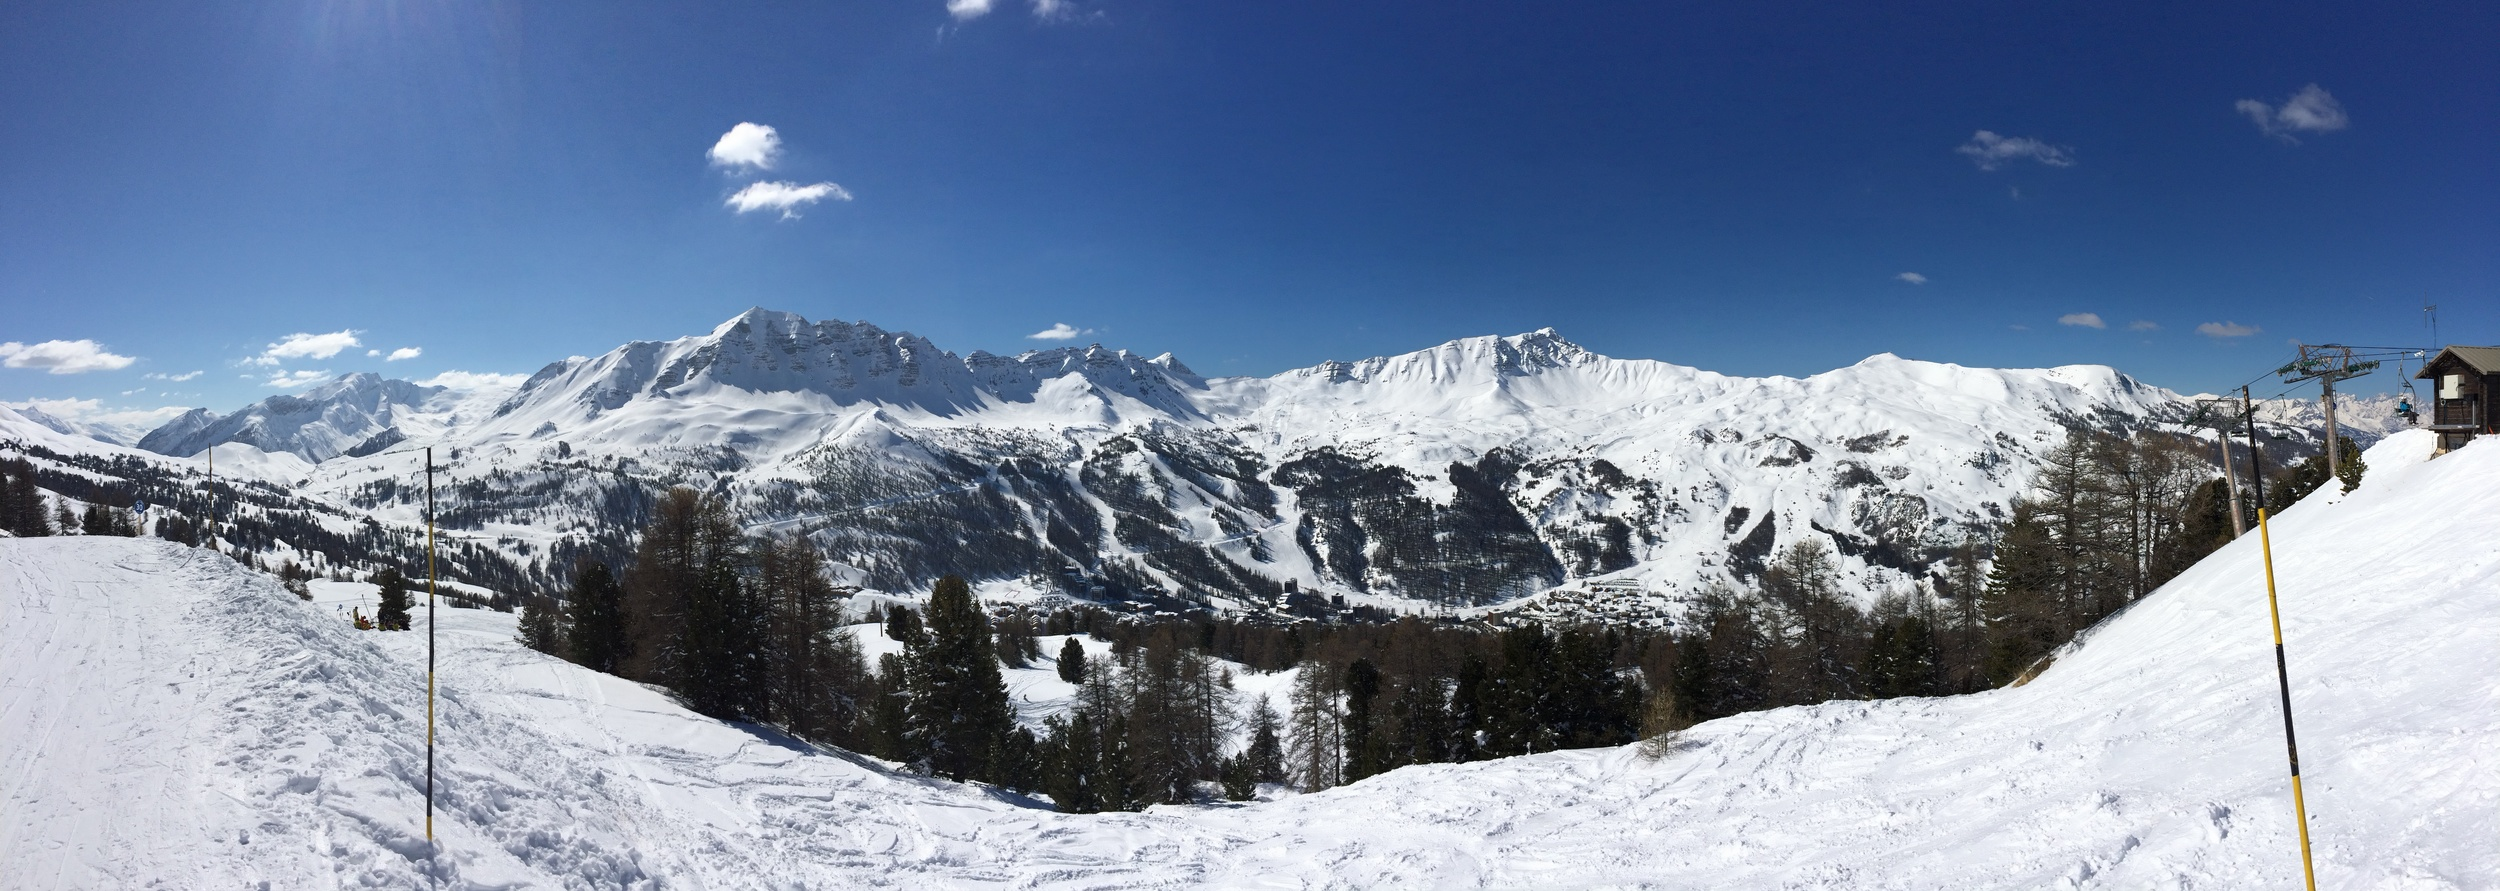 View from the other side of Vars